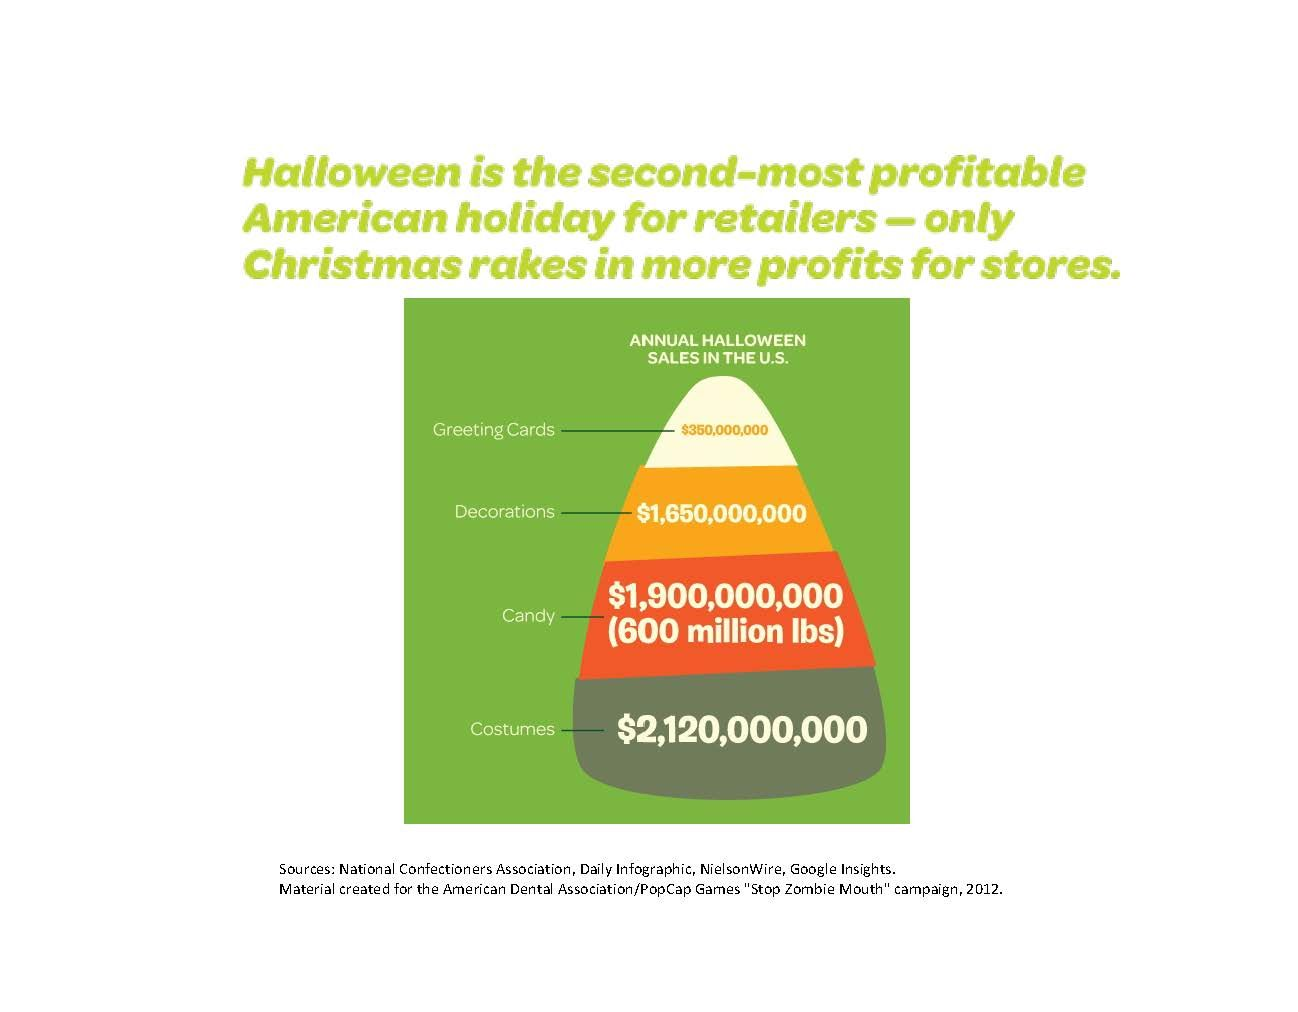 Halloween Is The 2nd Most Profitable Holiday It Racks Up 1 9 Billion Dollars In Sales Including About 600 Million Pounds Of Candy